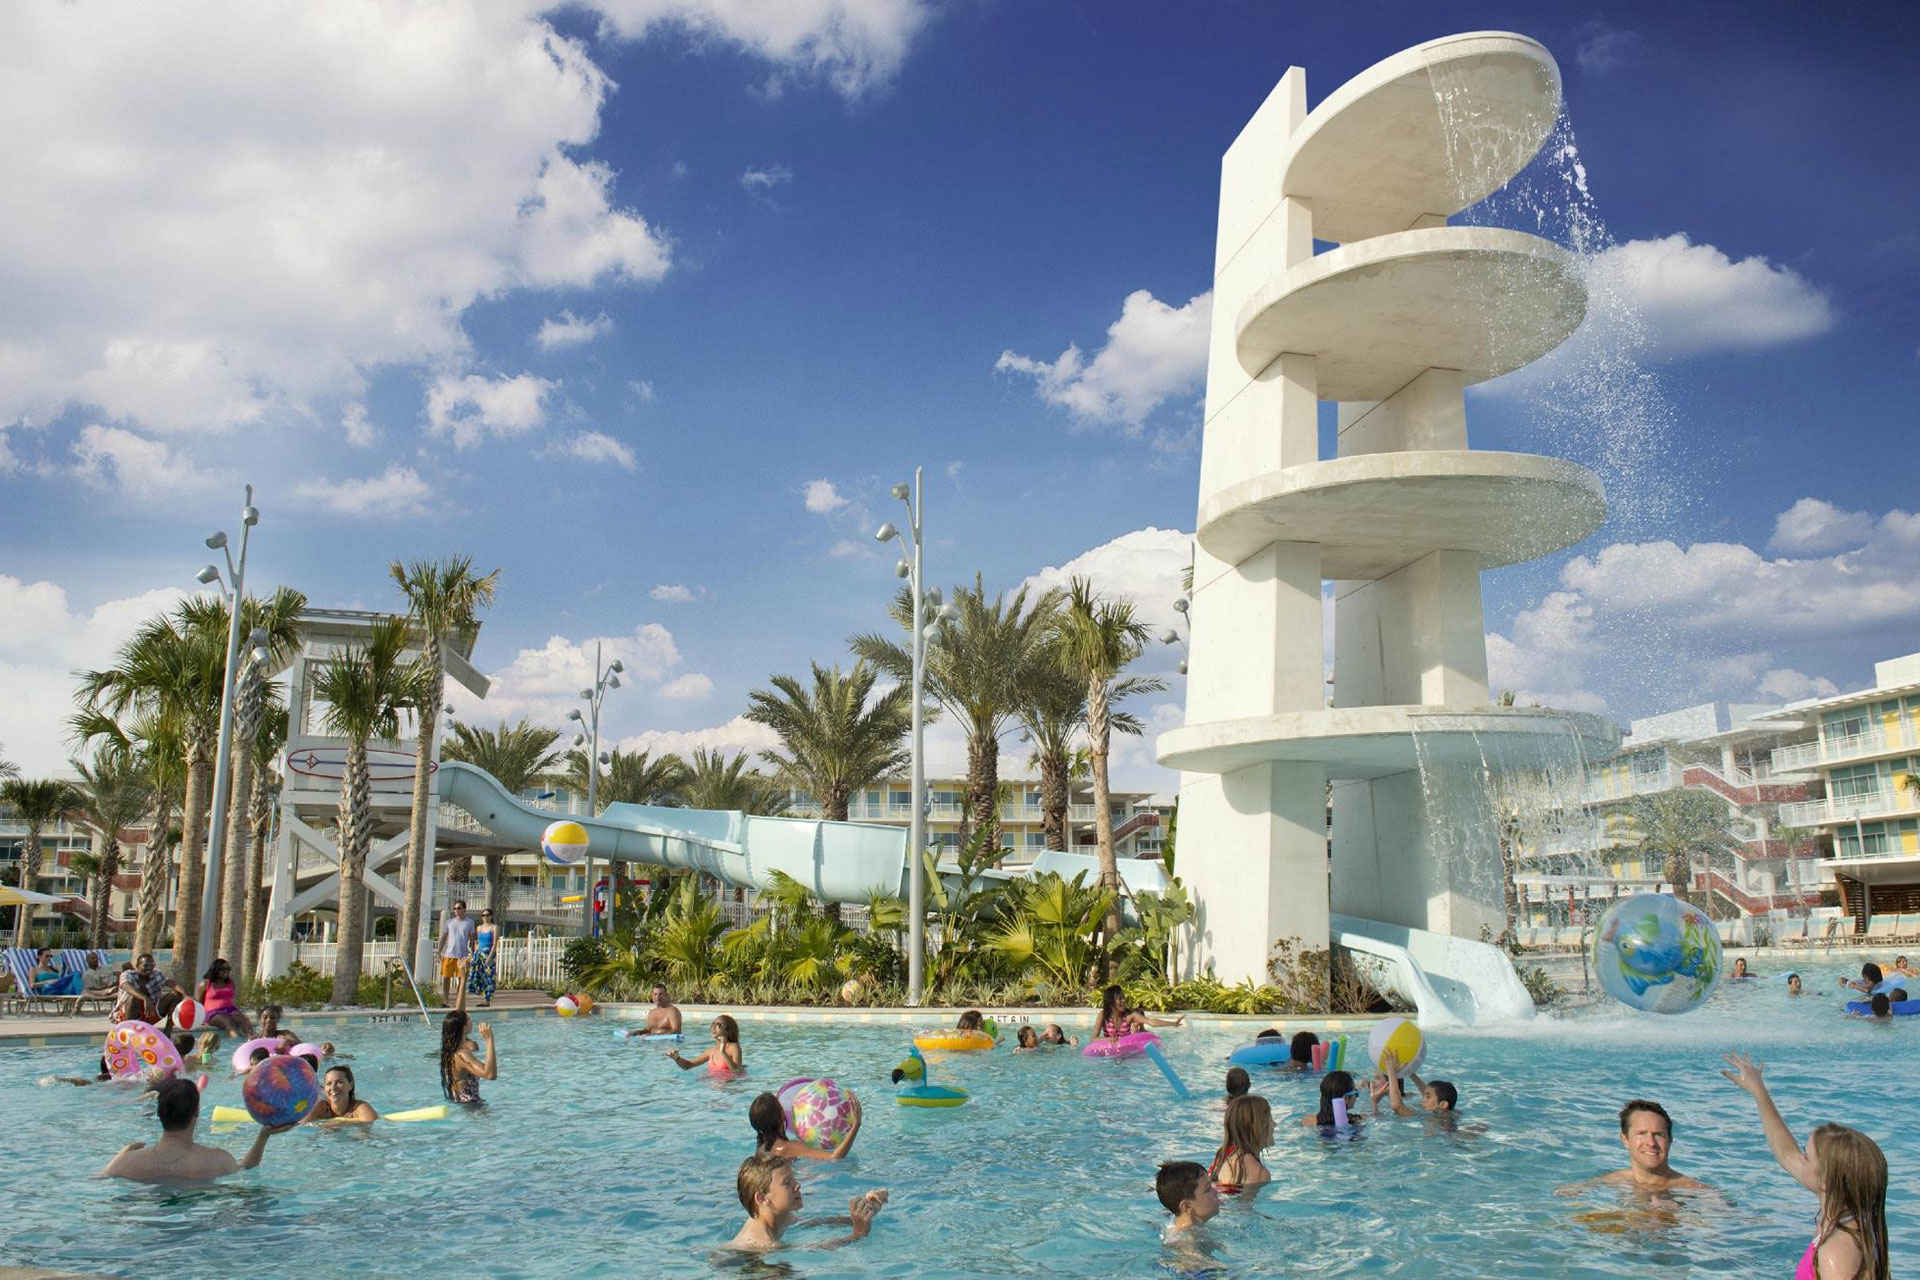 Cabana Bay Beach Resort pool; Courtesy of Universal's Cabana Bay Beach Resort